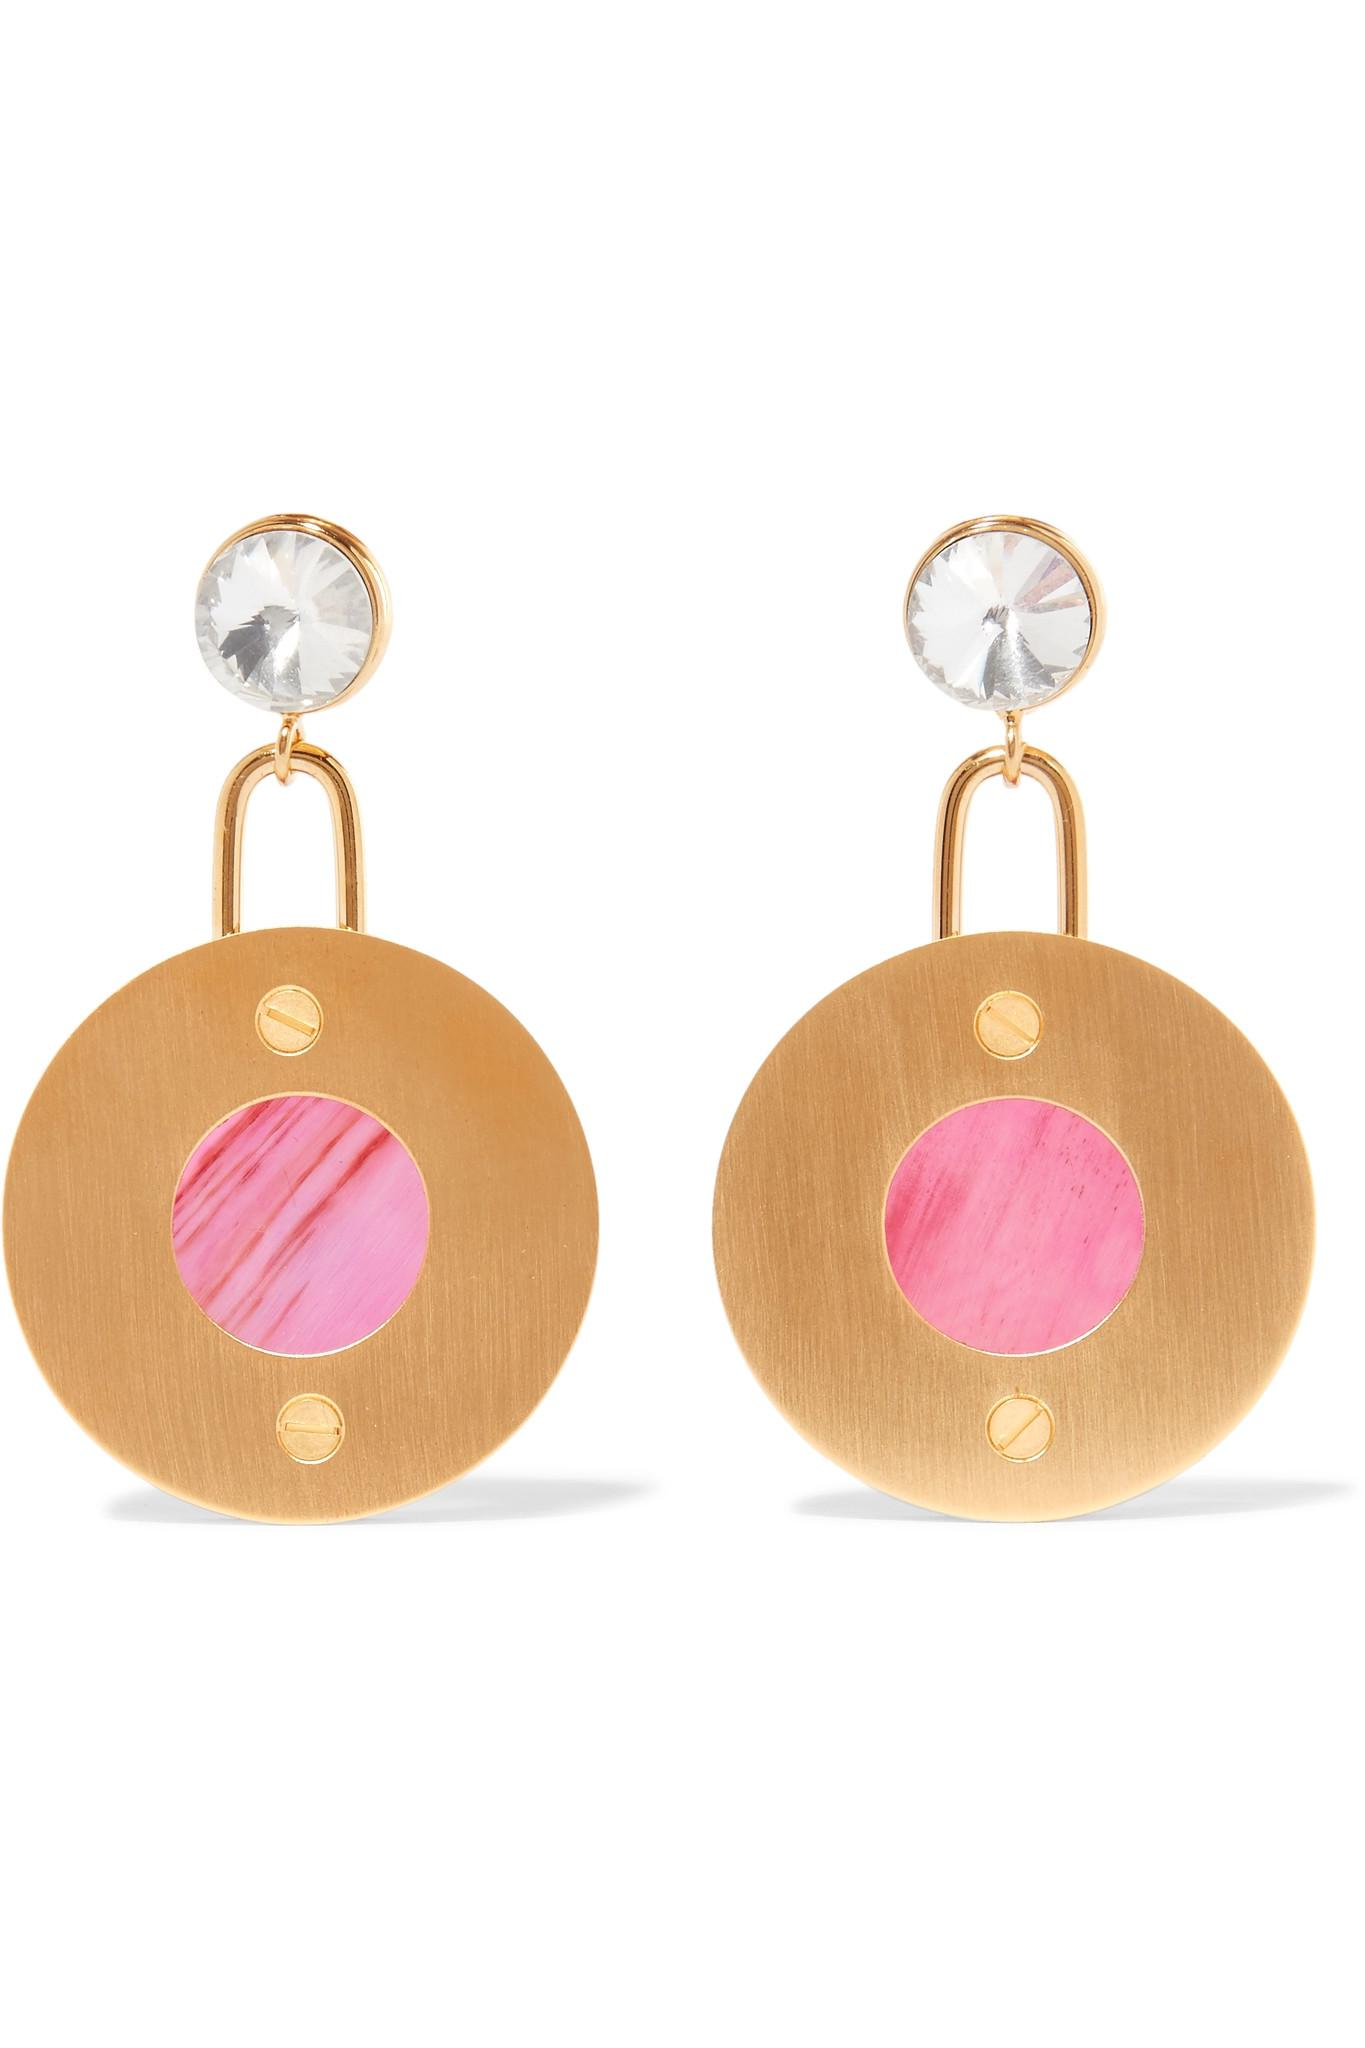 6e5464371 Lyst - Marni Gold-tone, Resin And Crystal Earrings in Pink